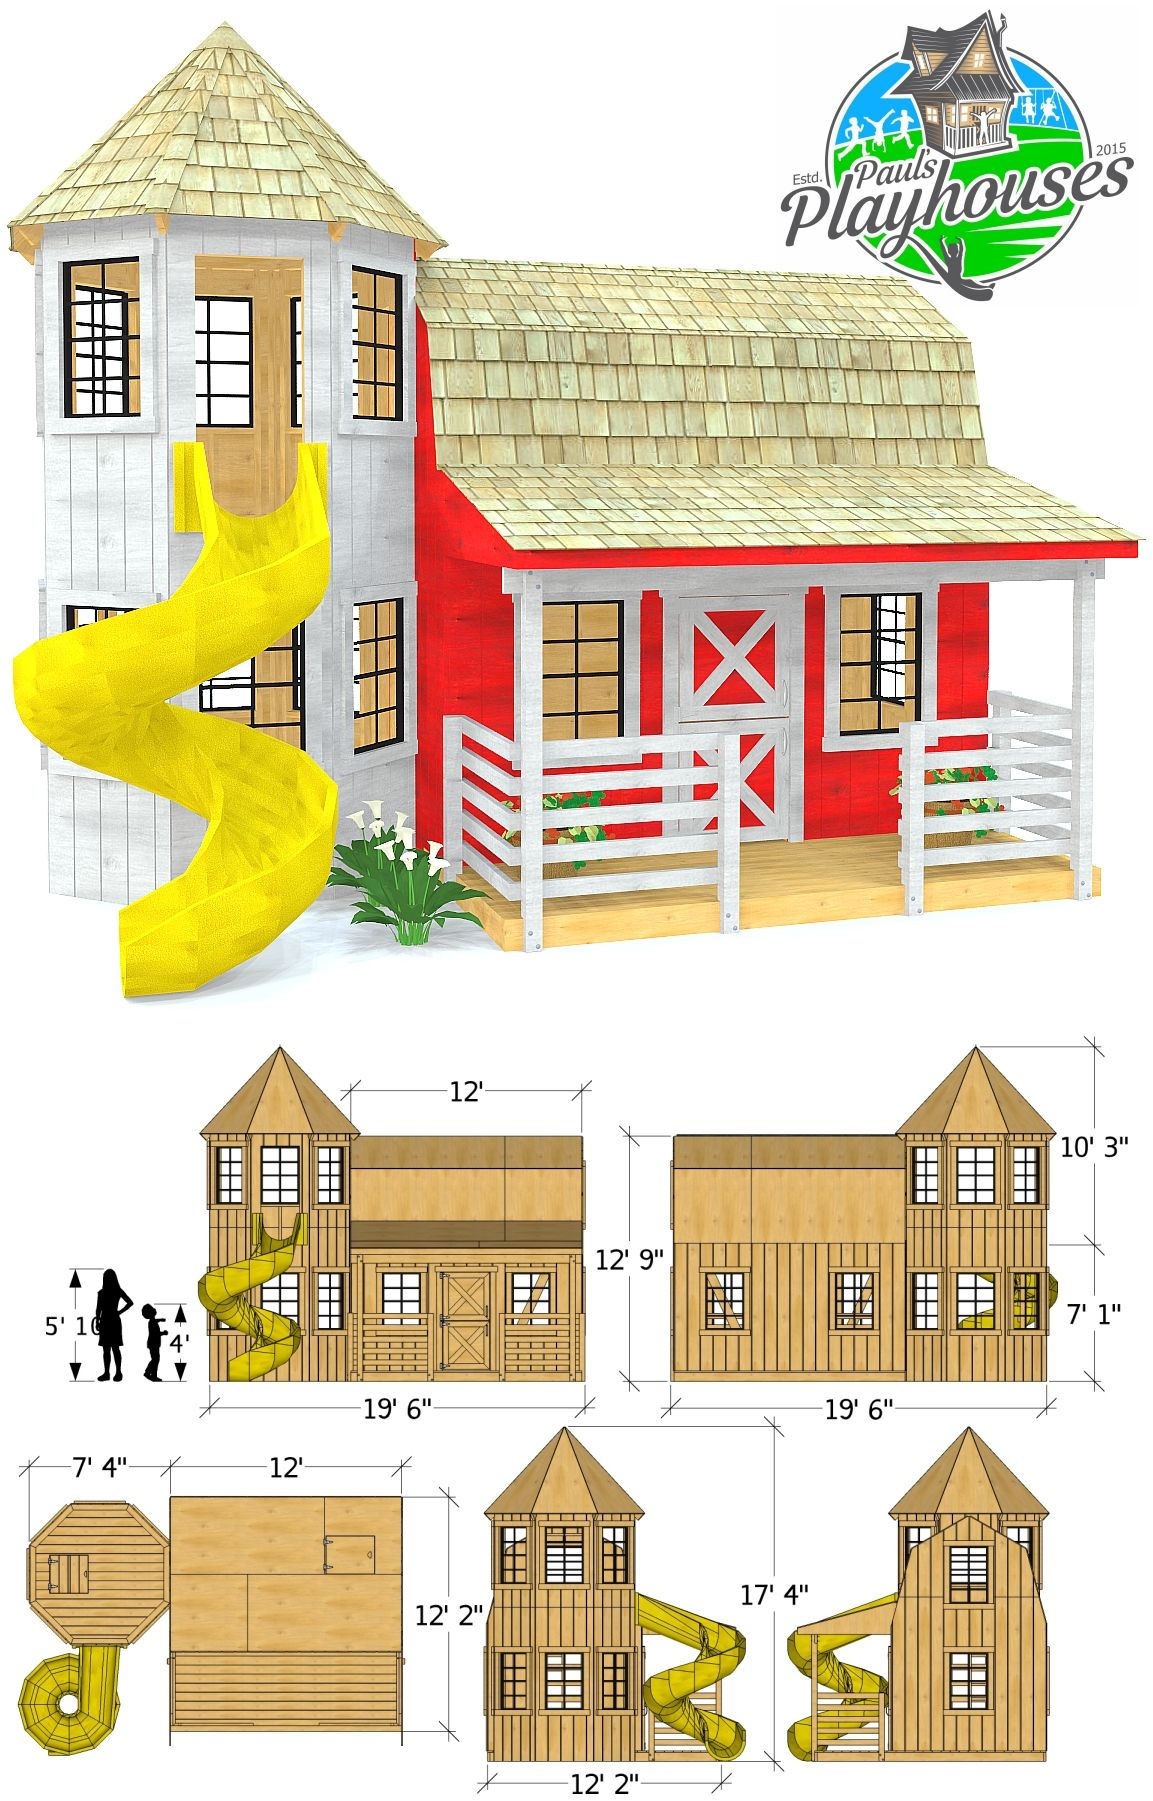 Barn Silo Playhouse Plan 2 Options Sold Separately Play Houses Kids Backyard Playground Playhouse Plan